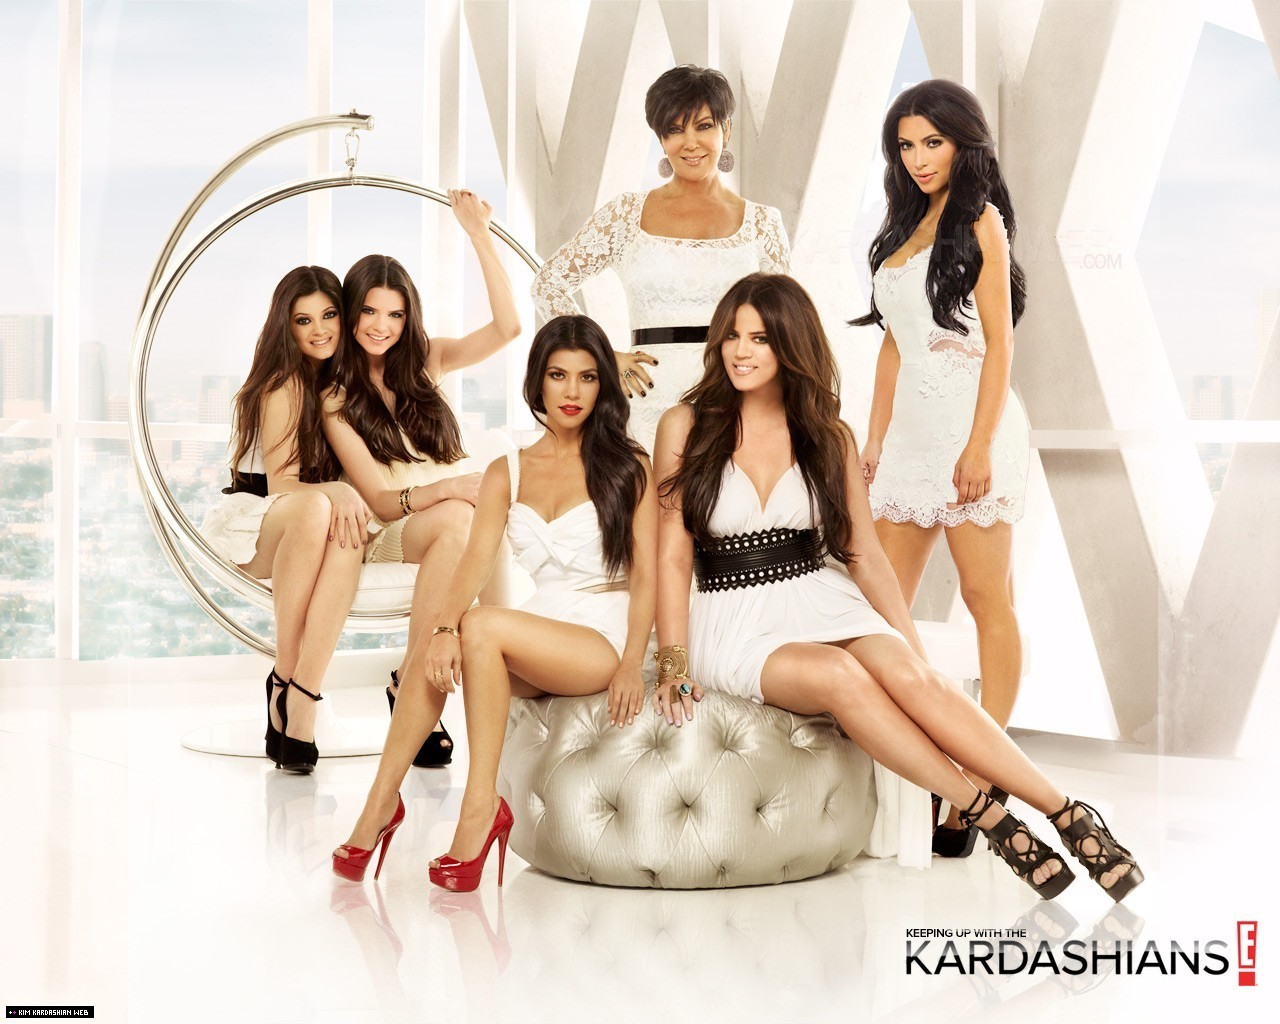 Moviezone: Watch Keeping Up With the Kardashians Season 8 Episode 4 Free